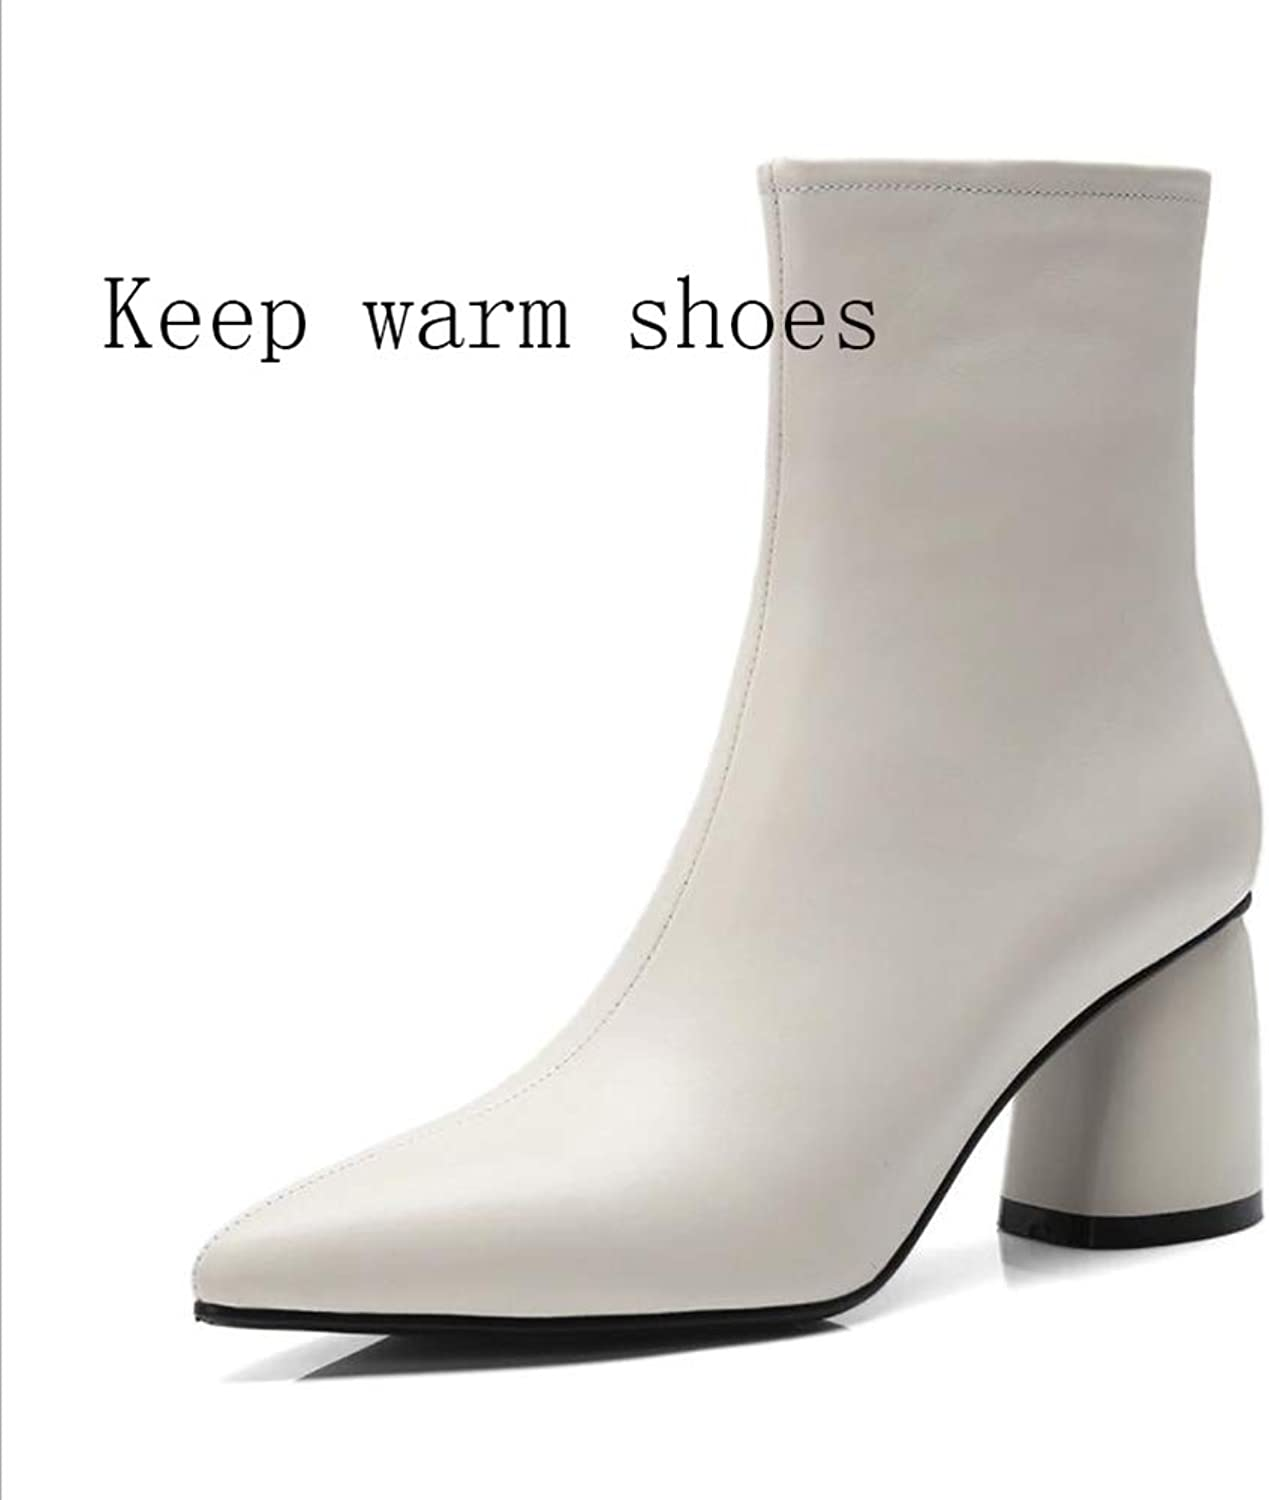 Women's shoes, Leather Winter Warm Pointed shoes Leather Boots Thick Heel Ankle Boots Mid-Calf Boots Formal Boots High Heel (color   A, Size   37)